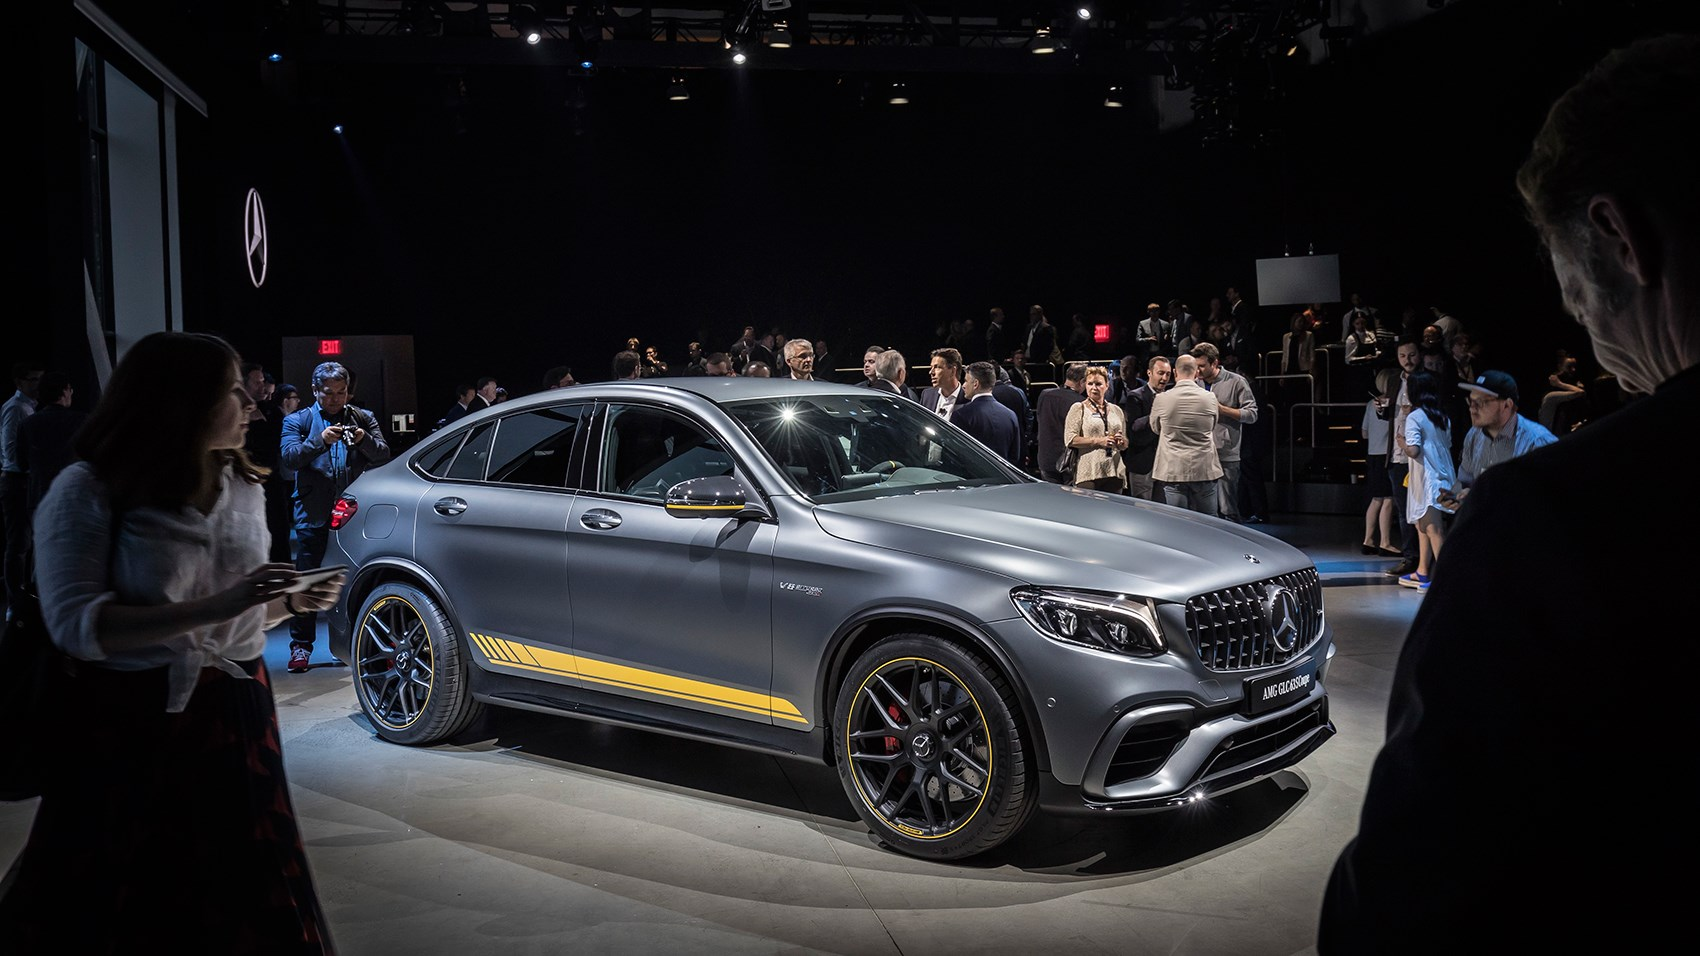 https://car-images.bauersecure.com/pagefiles/71647/5_mercedesamg_glc63.jpg